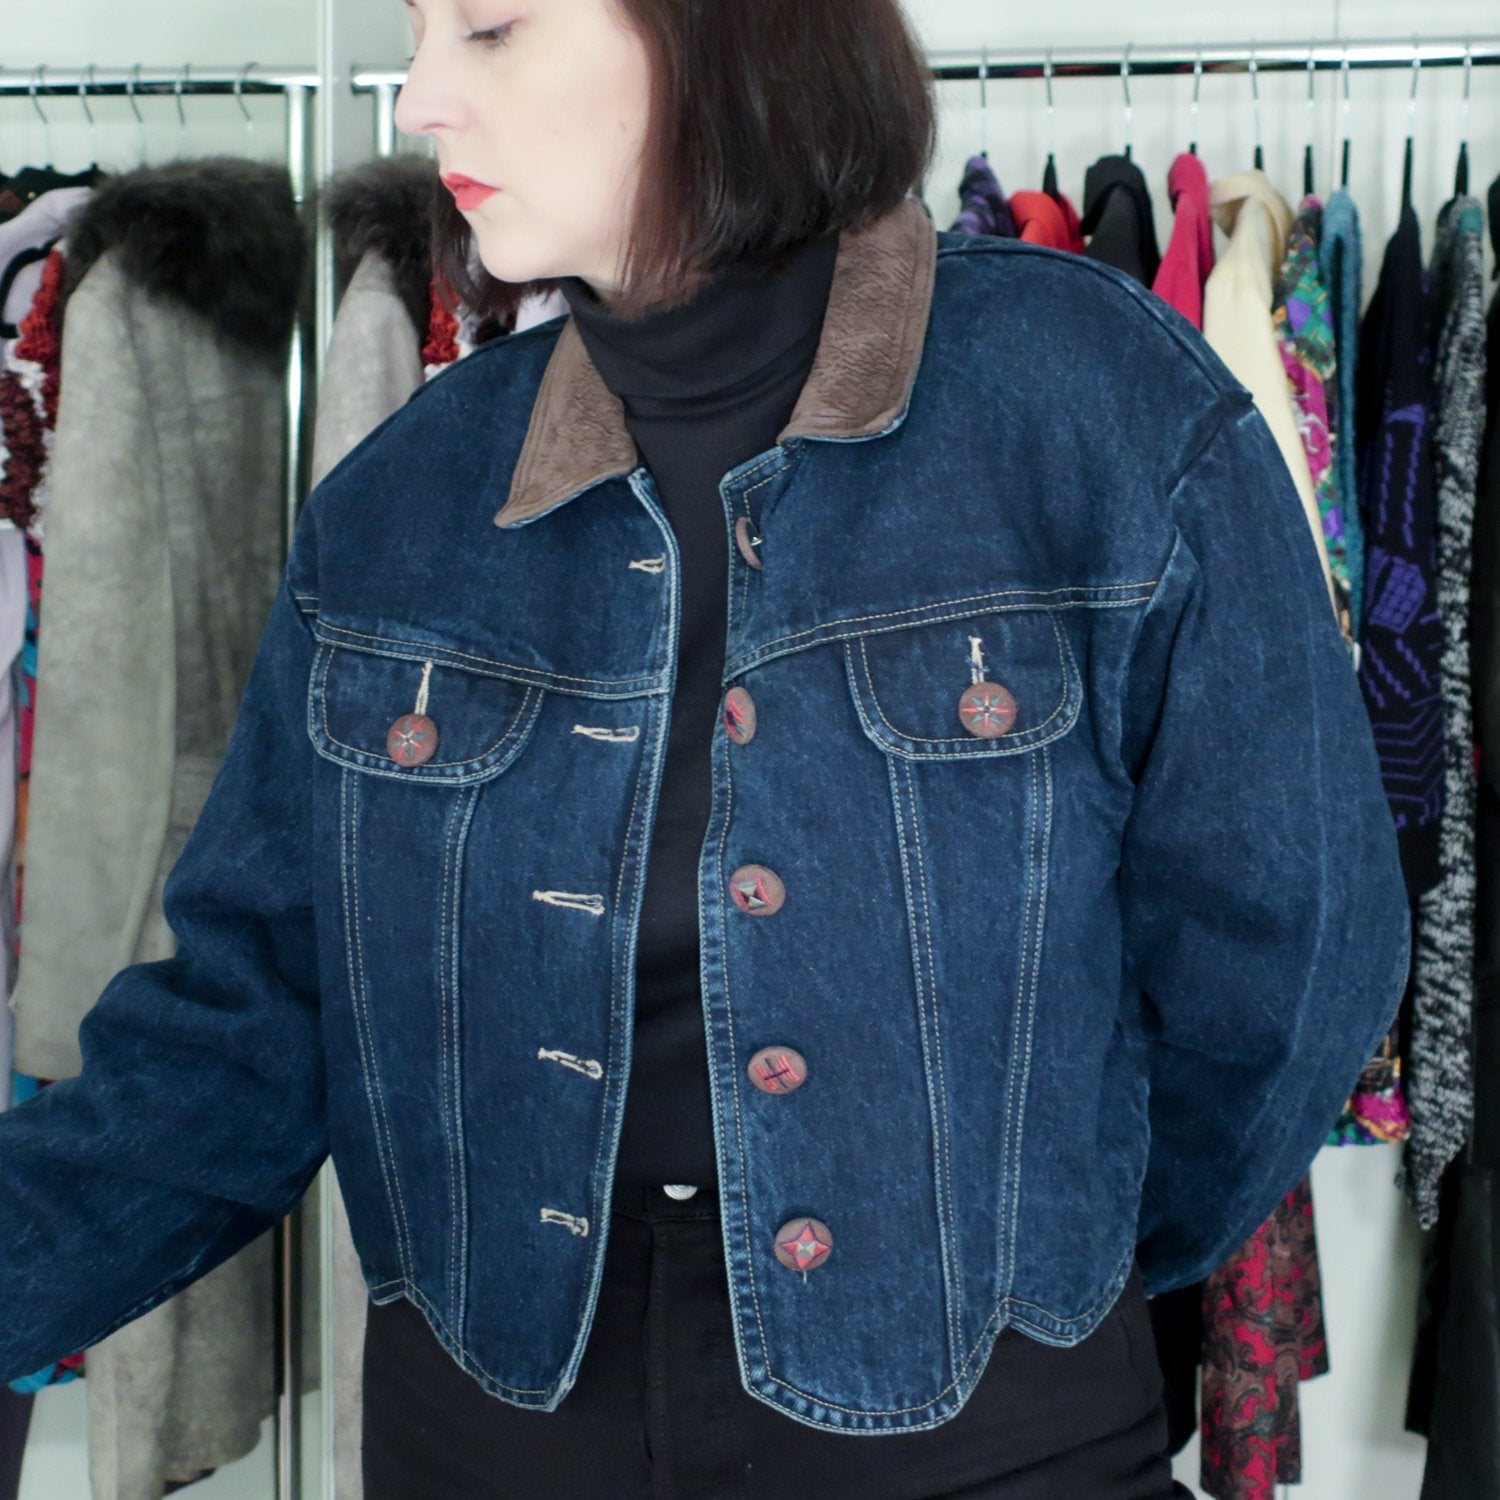 Second Room Shop Vintage. Shop vintage, shop sustainable. Vintage Roughrider denim jacket, with faux suede collar, and cropped scalloped bottom. The buttons on the jacket are the real stars, as they are all faux suede covered, and embroidered with different patterns. The jacket has two front breast pockets, and one button at each cuff.